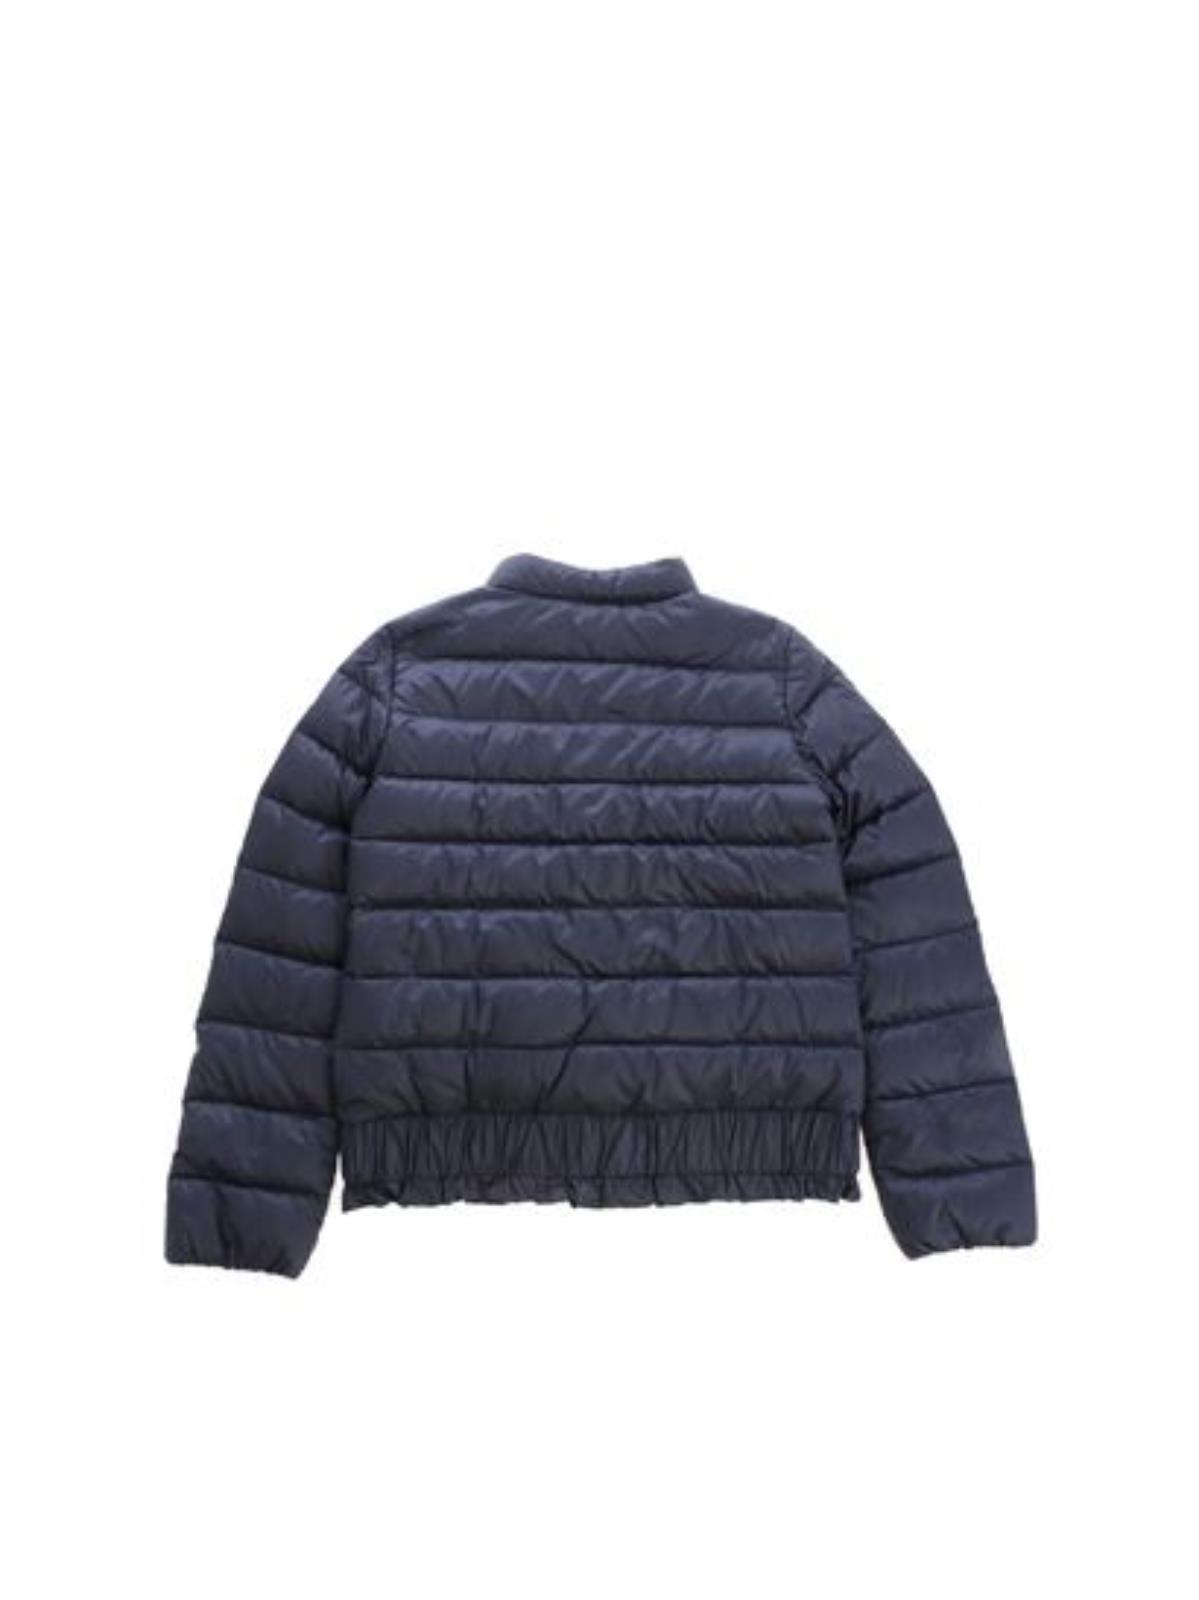 6596c3f32811 Piumino Moncler kid modello Long Season Abricot blu con rouches in vita.